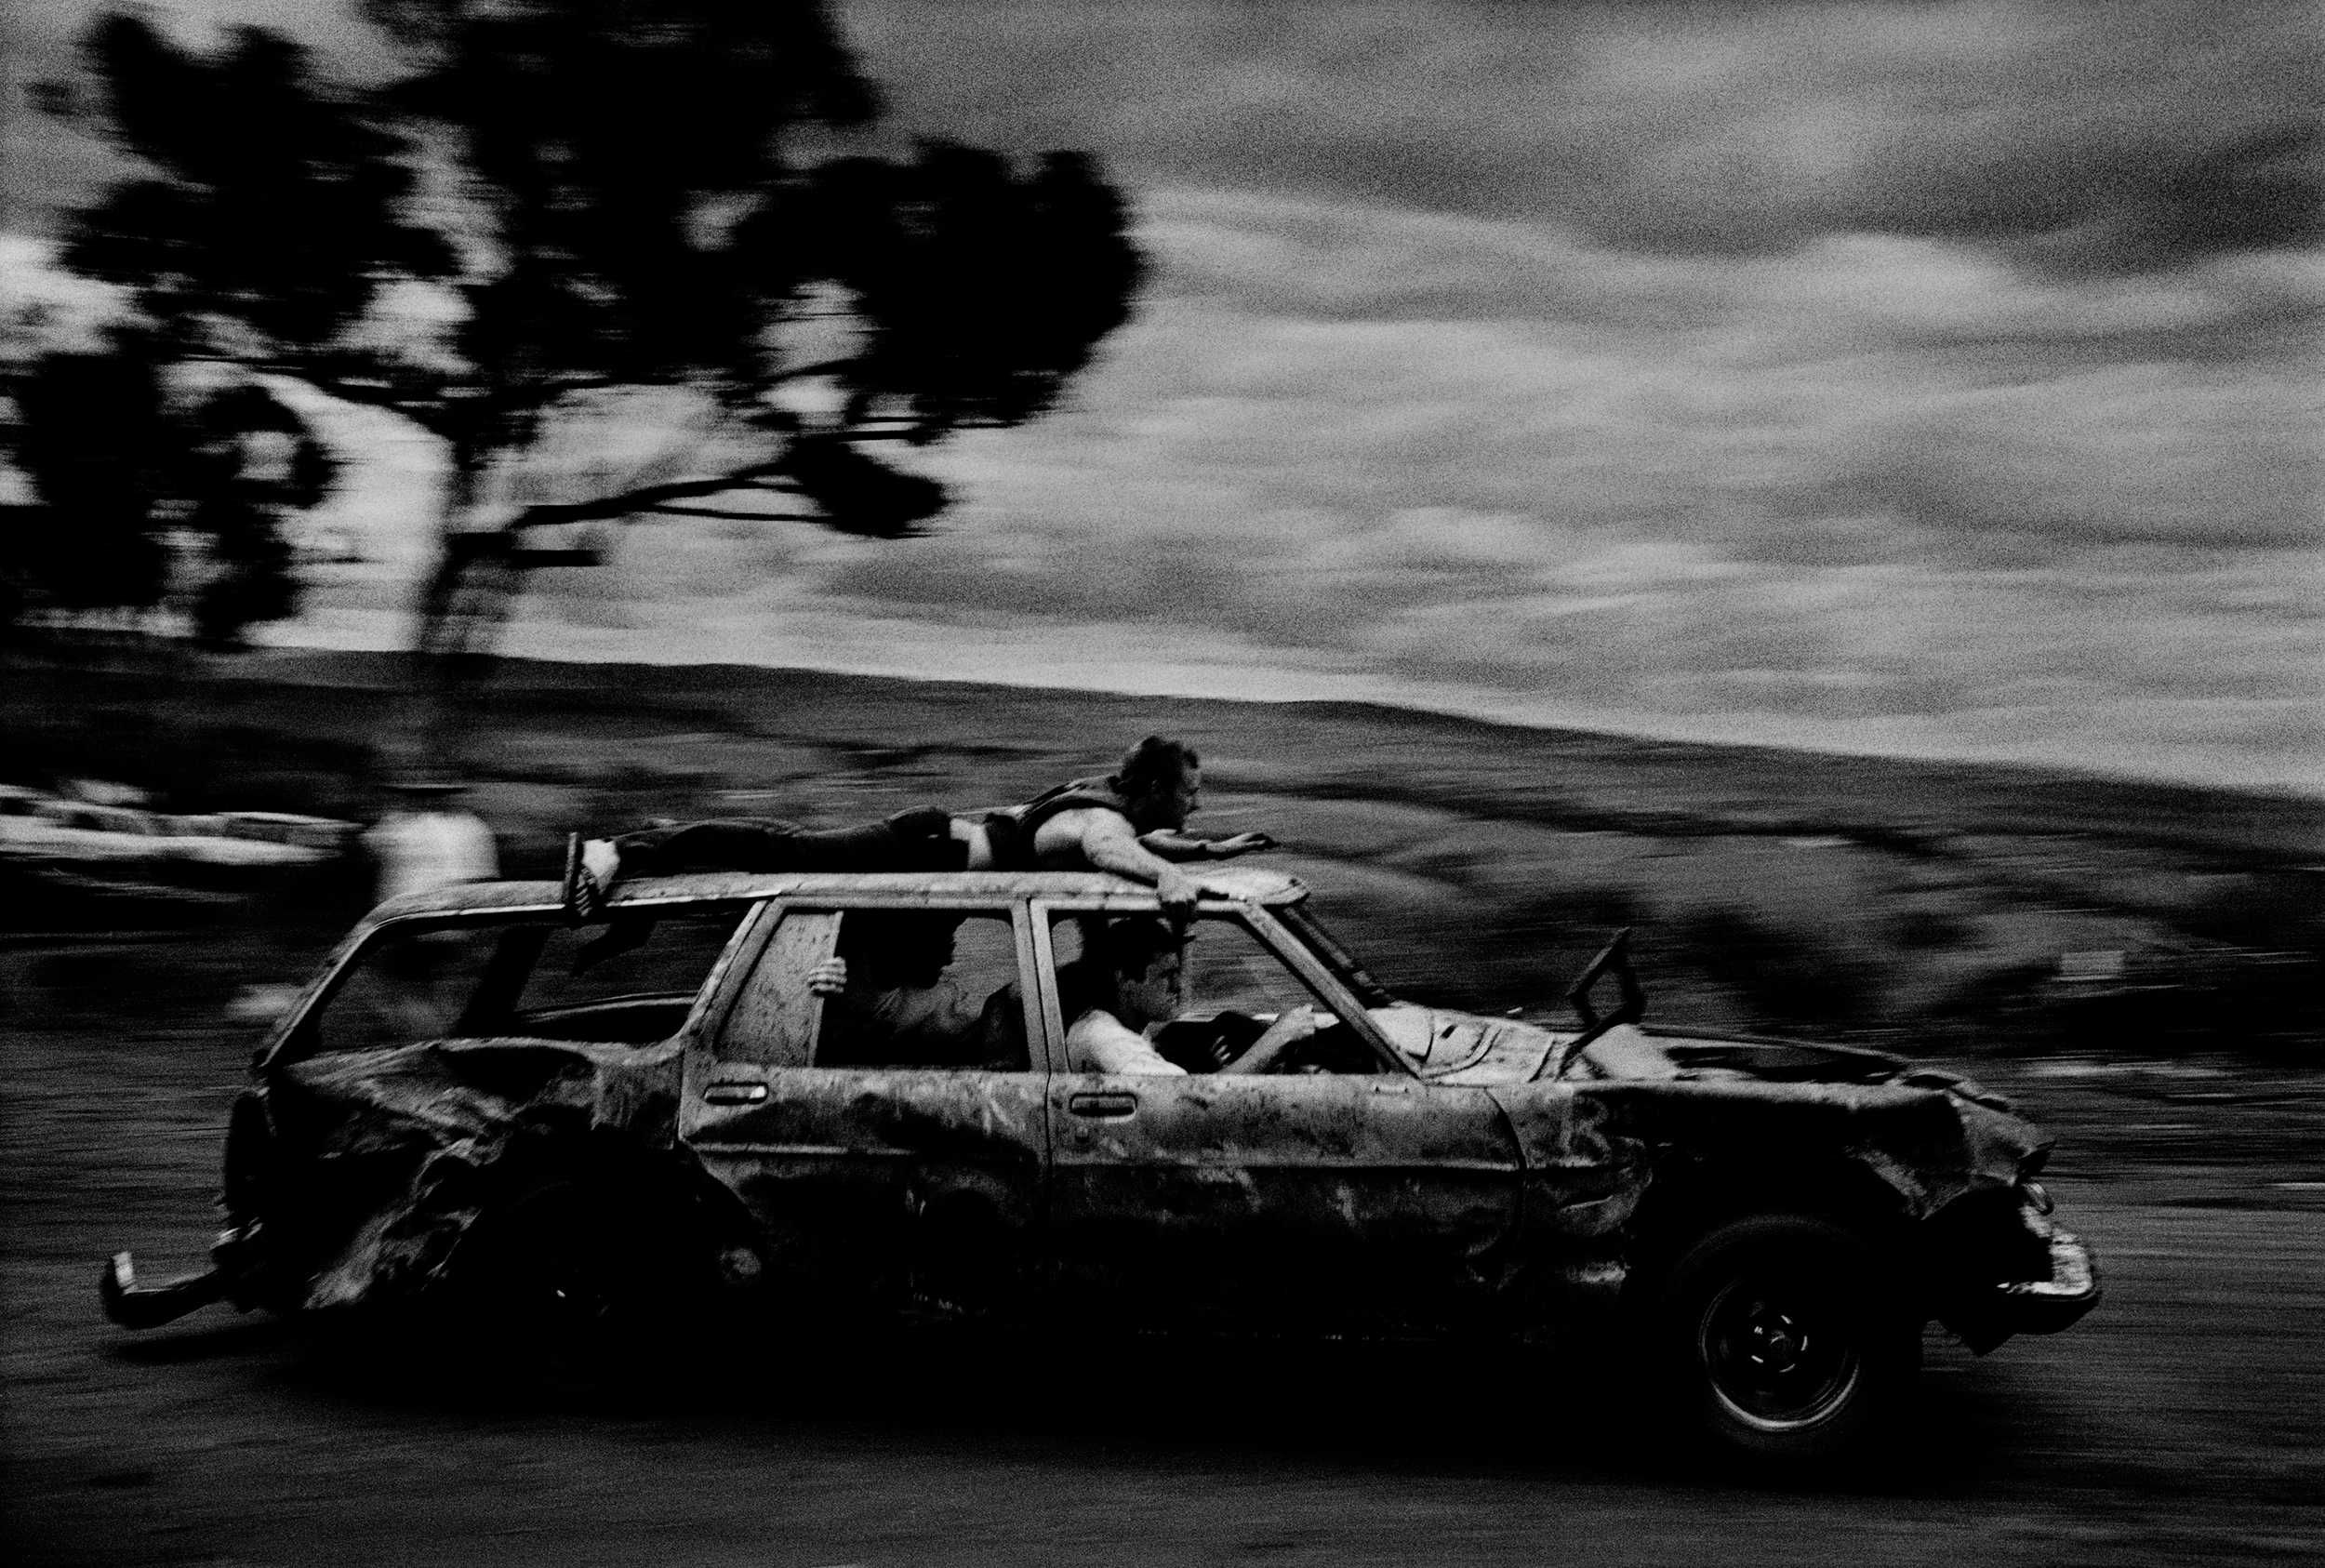 Trent Parke - Minute to midnight